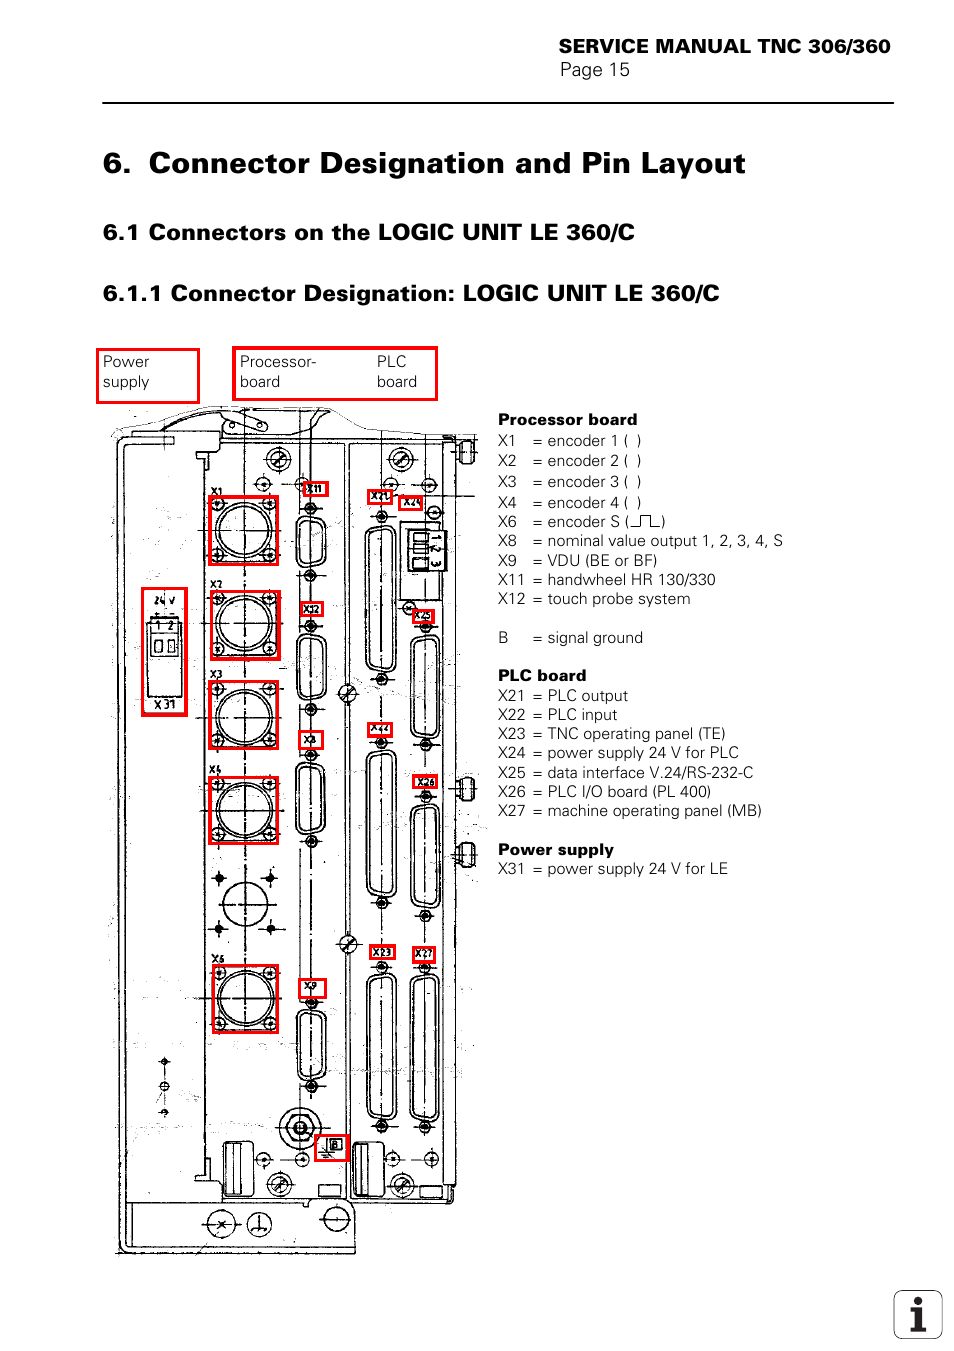 Connector designation and pin layout, Connectors on the